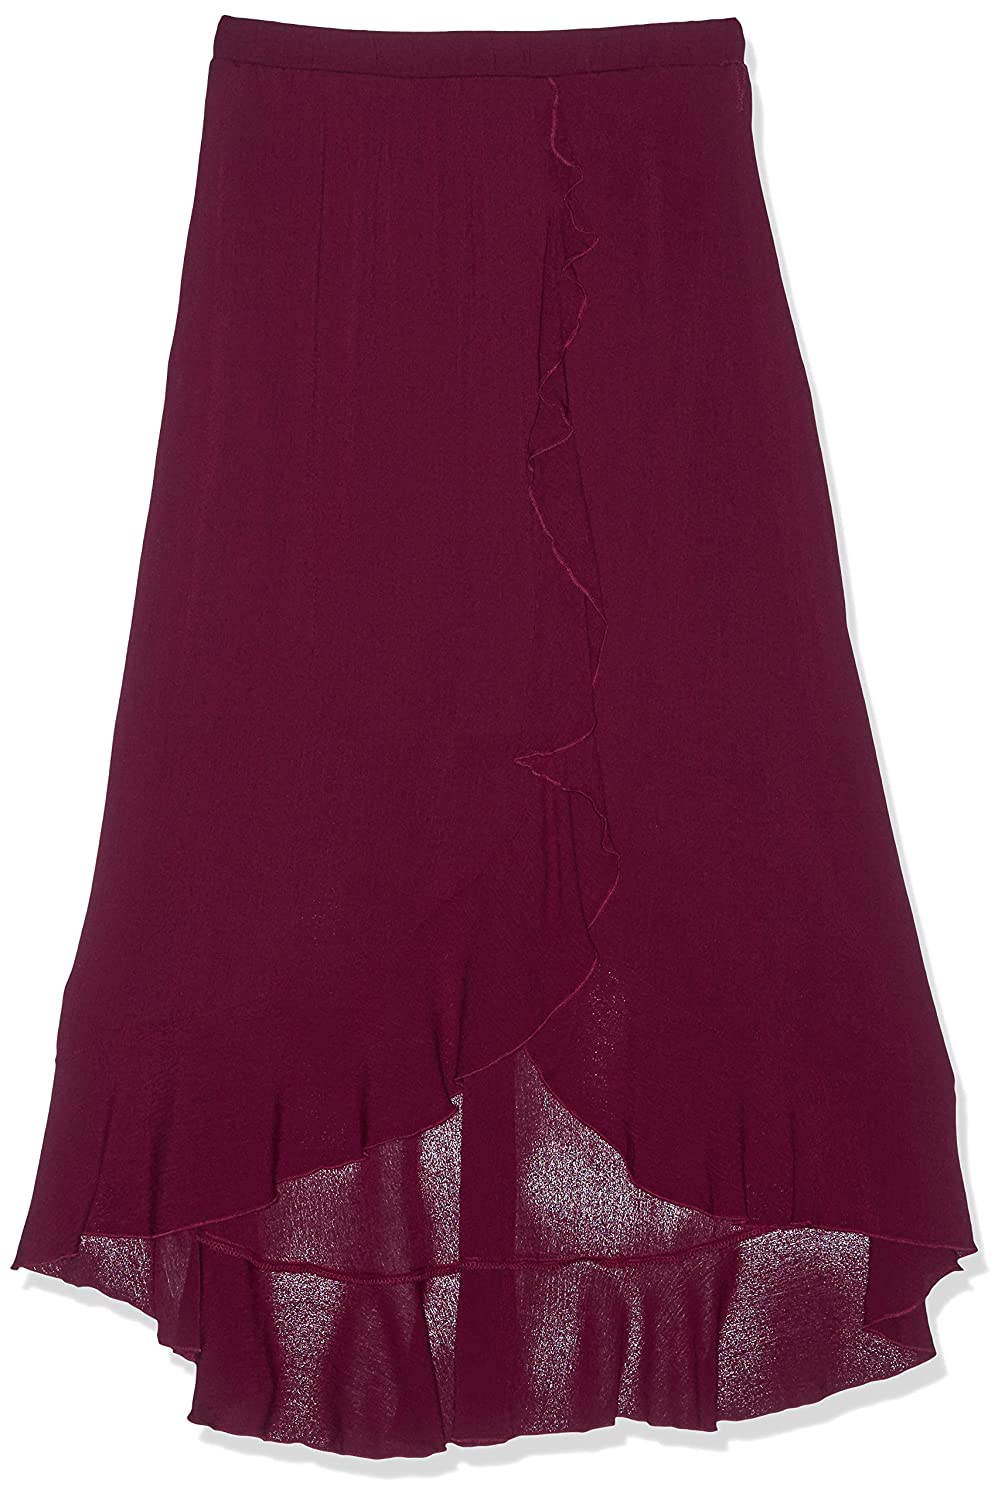 Amy Byer Girls Big Ruffle Front Maxi Skirt with Belt